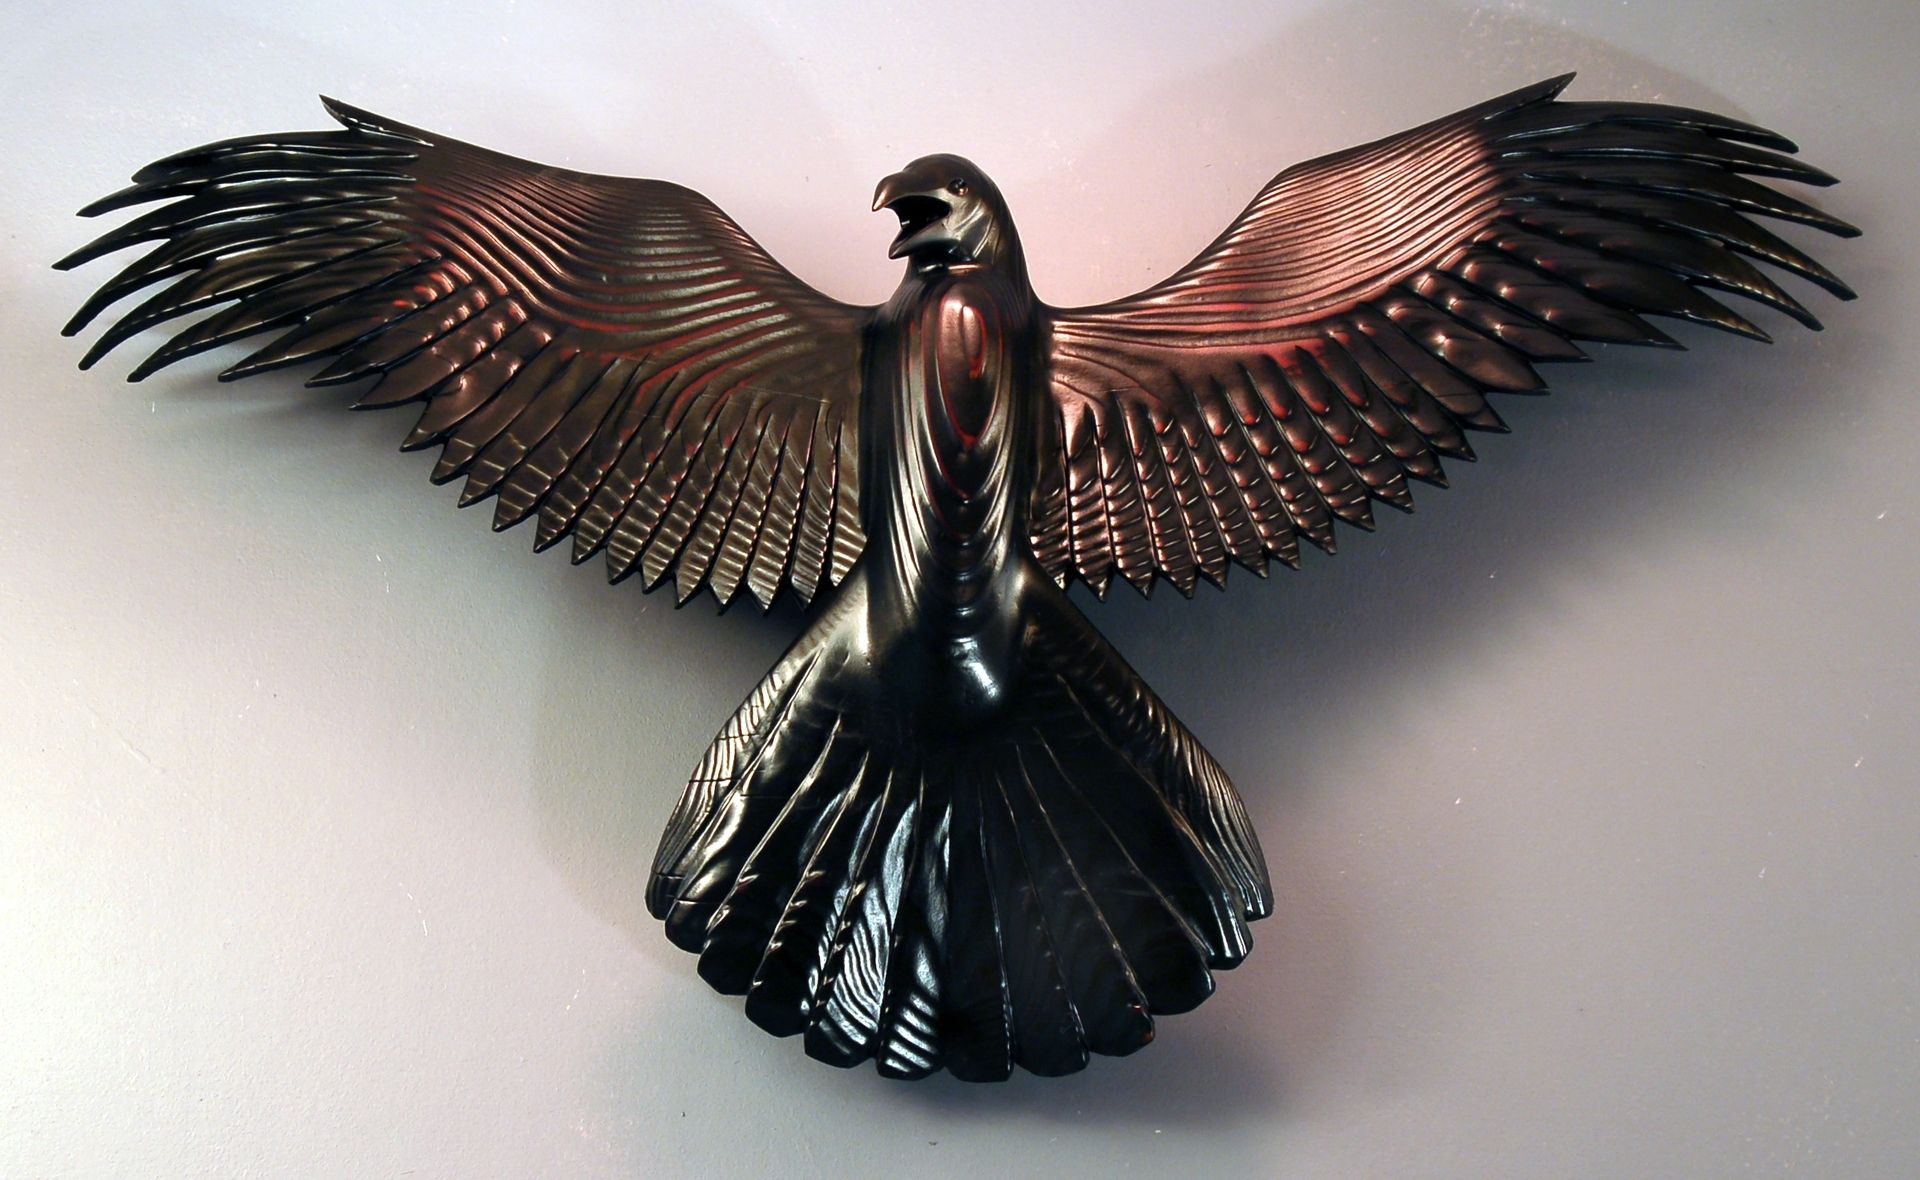 Handmade Raven Wood Carving By Jason Tennant By Jason